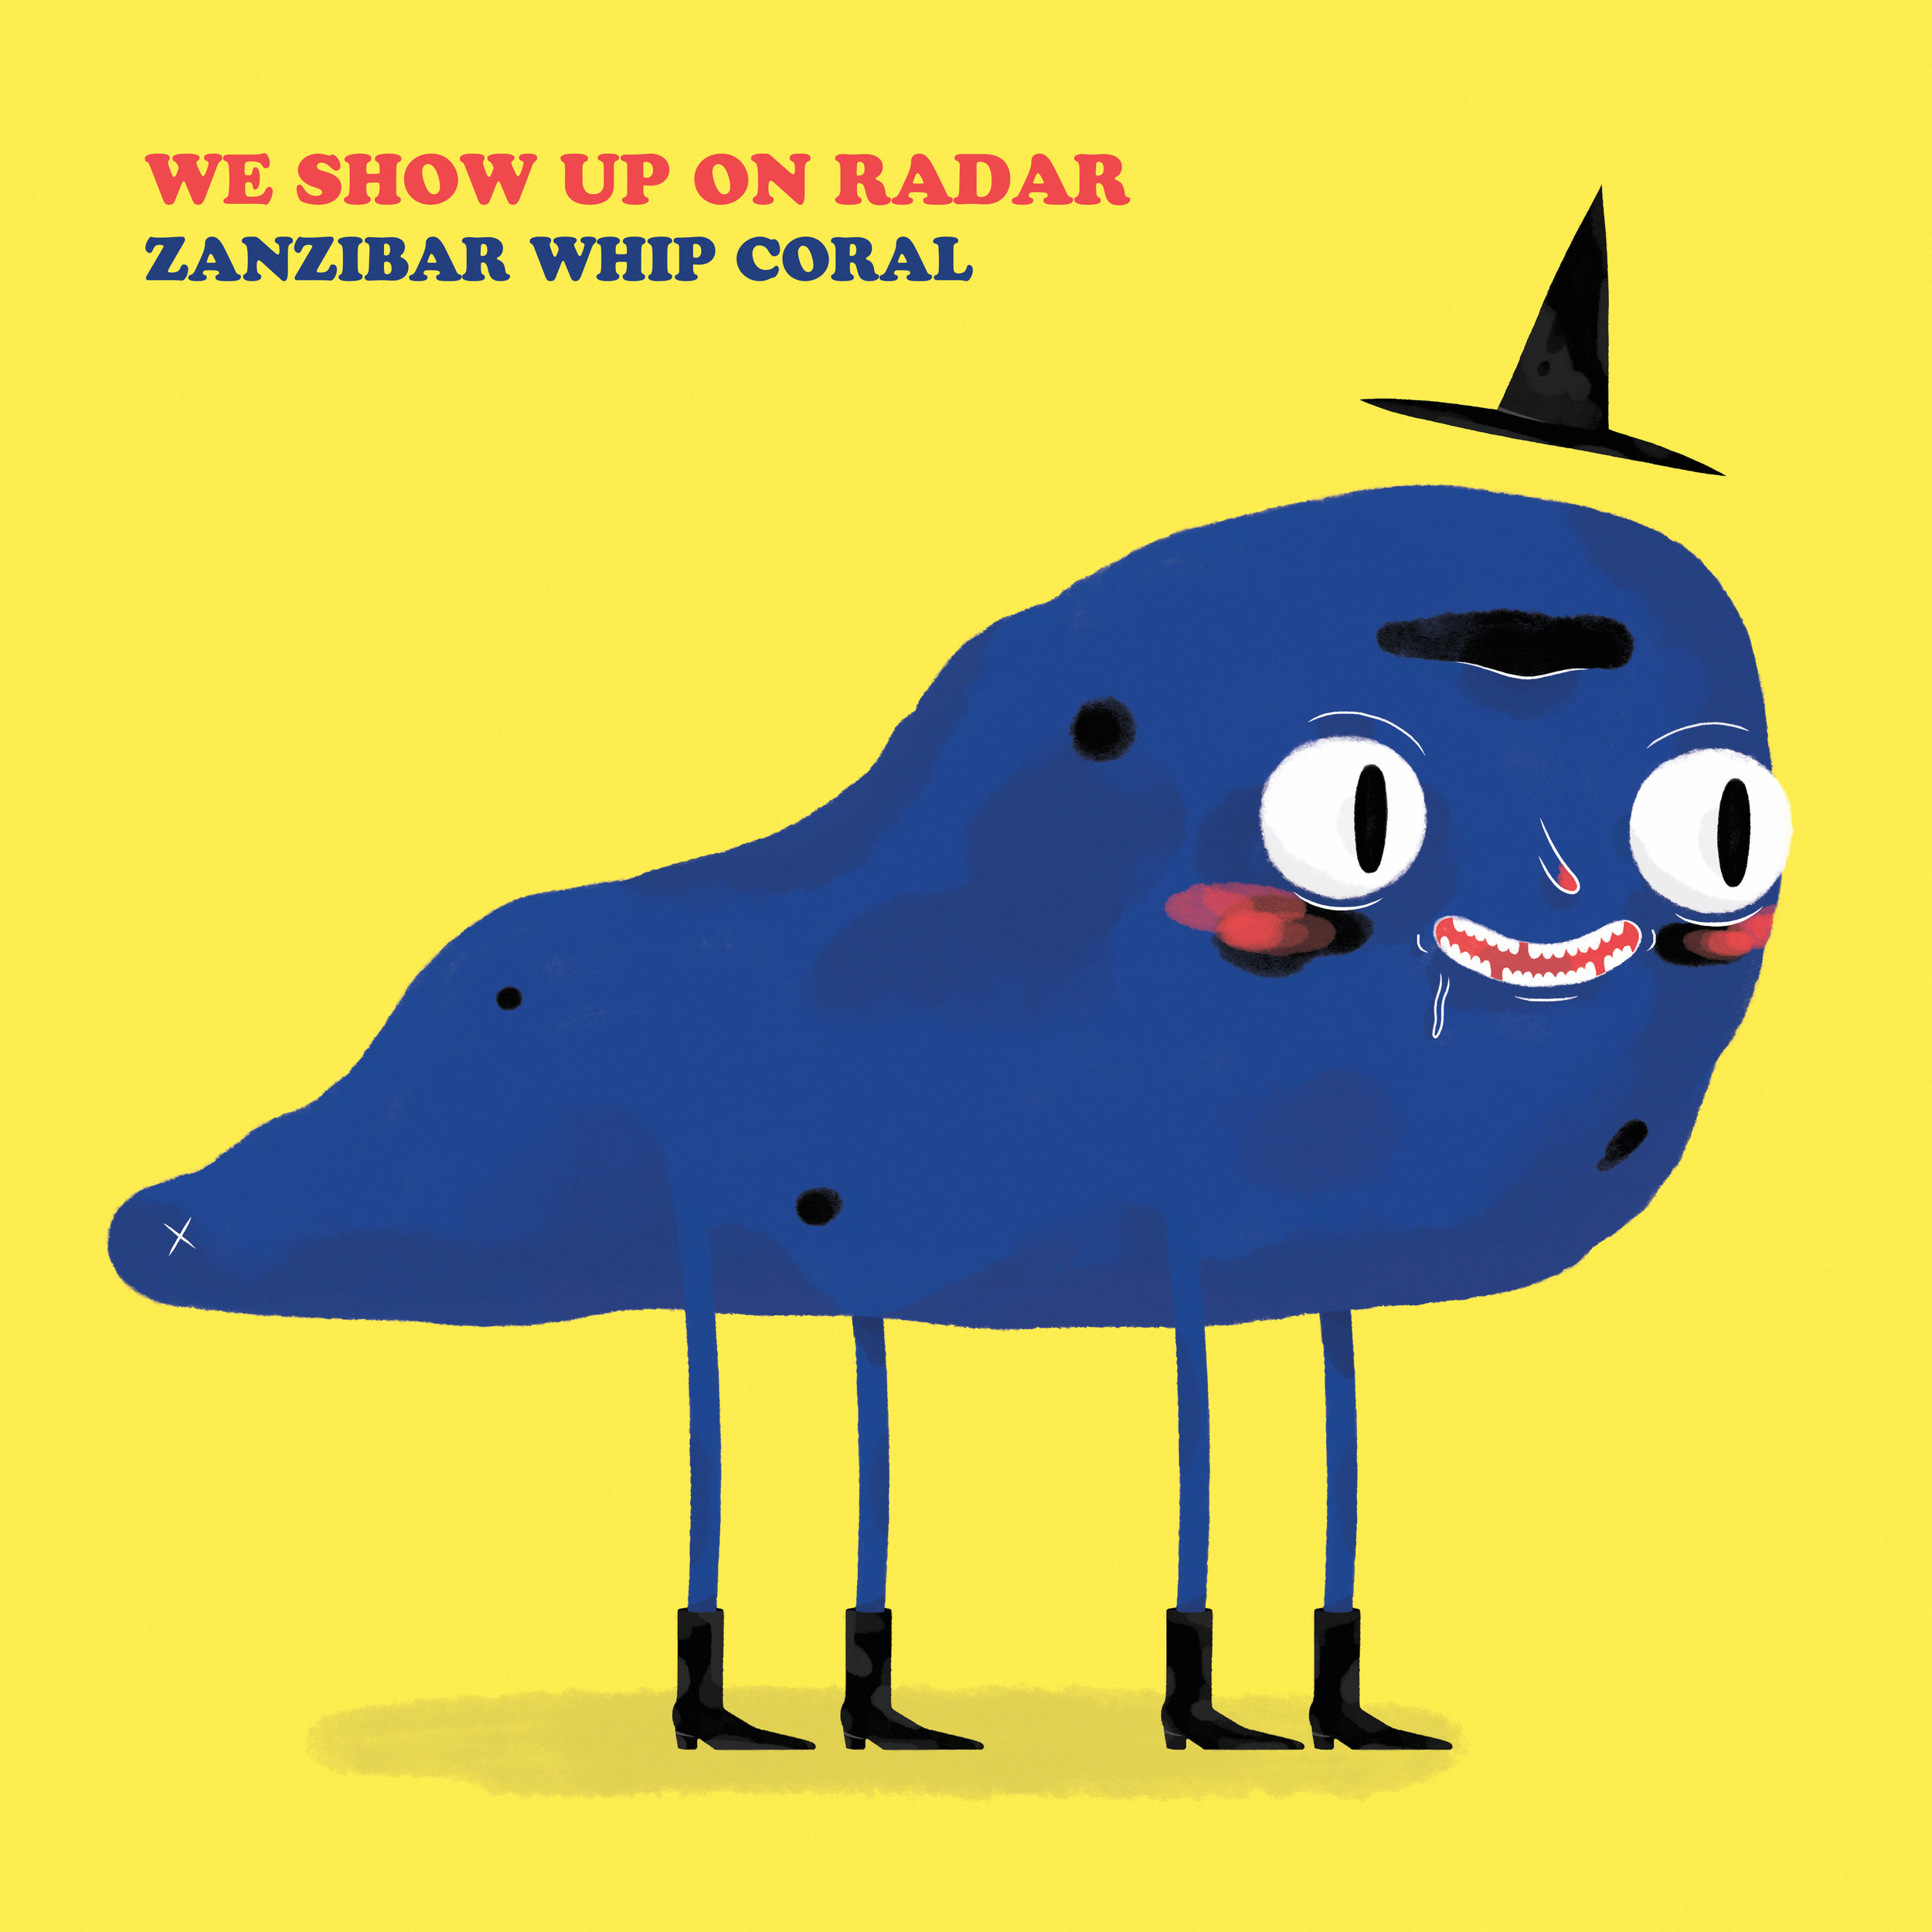 We Show Up On Radar - Zanzibar Whip Coral